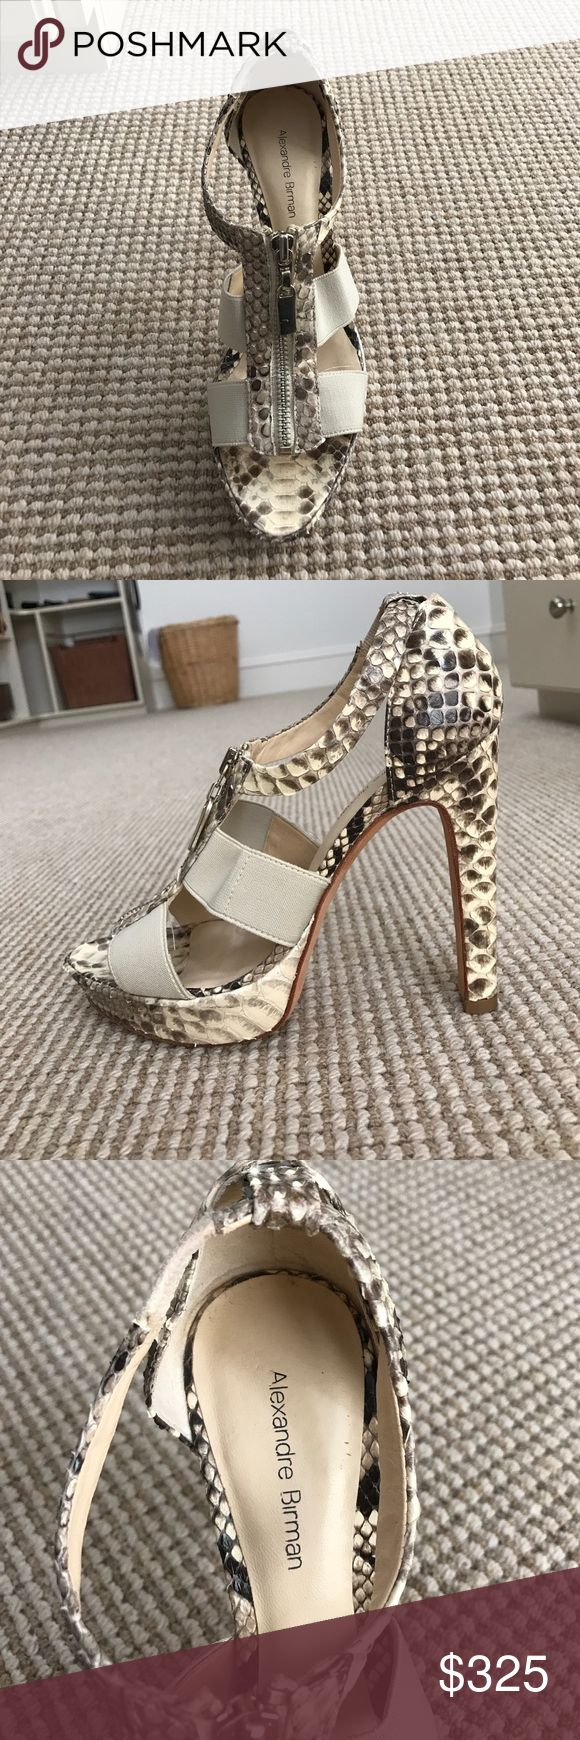 ALEXANDRE BIRMAN REAL SNAKE SKIN ZIPPER PUMP Real snake skin pump heel by Alexandre Birman. Alexandre Birman Shoes Heels